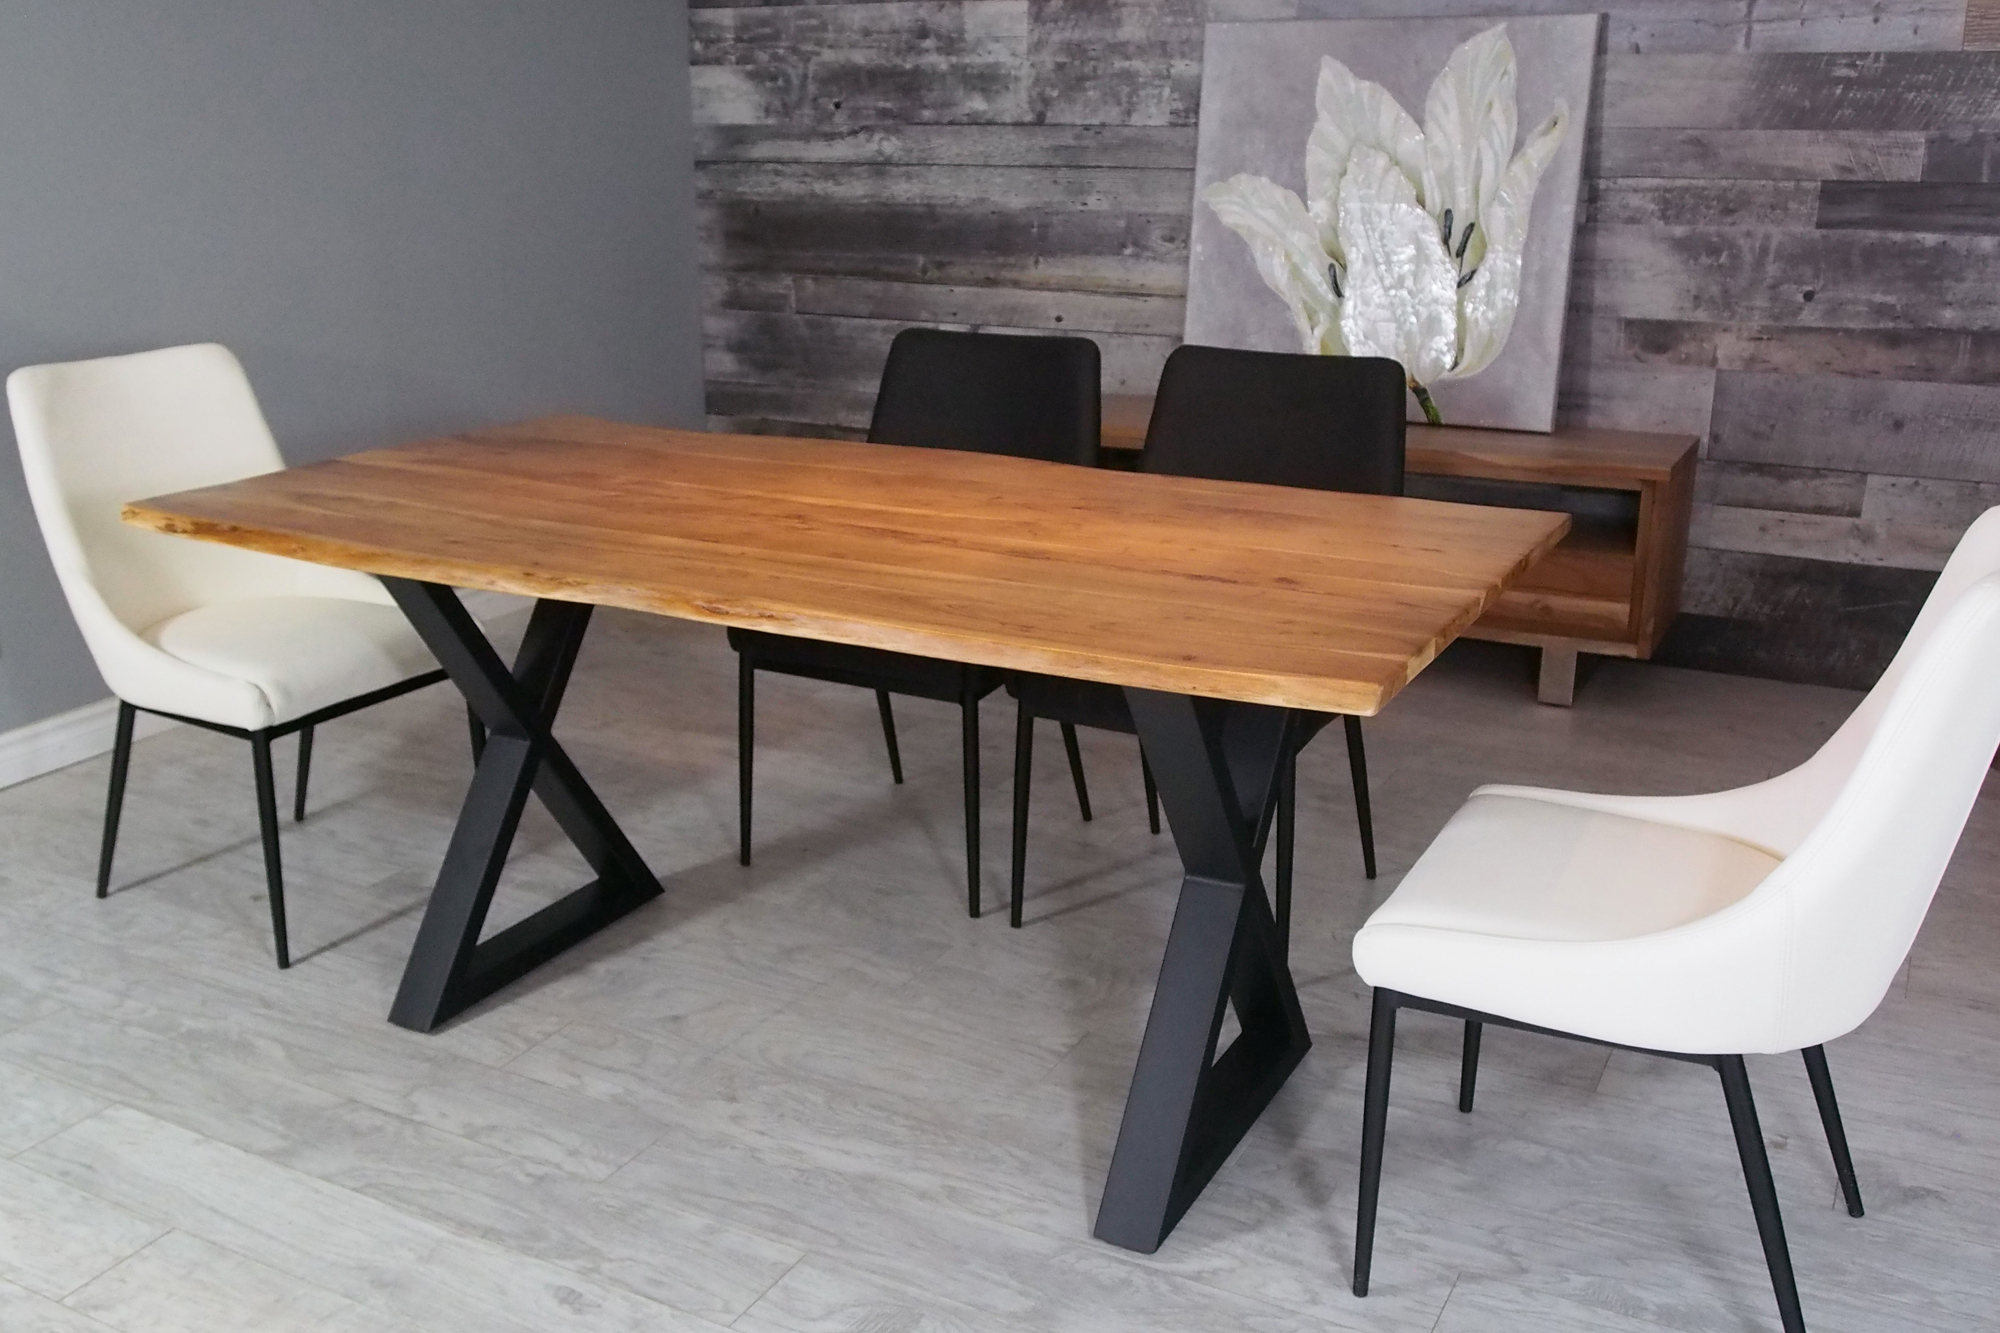 "Most Recent Corcoran Acacia Live Edge Dining Table With Black X Legs – 67"" Within Acacia Dining Tables With Black X Legs (View 22 of 30)"